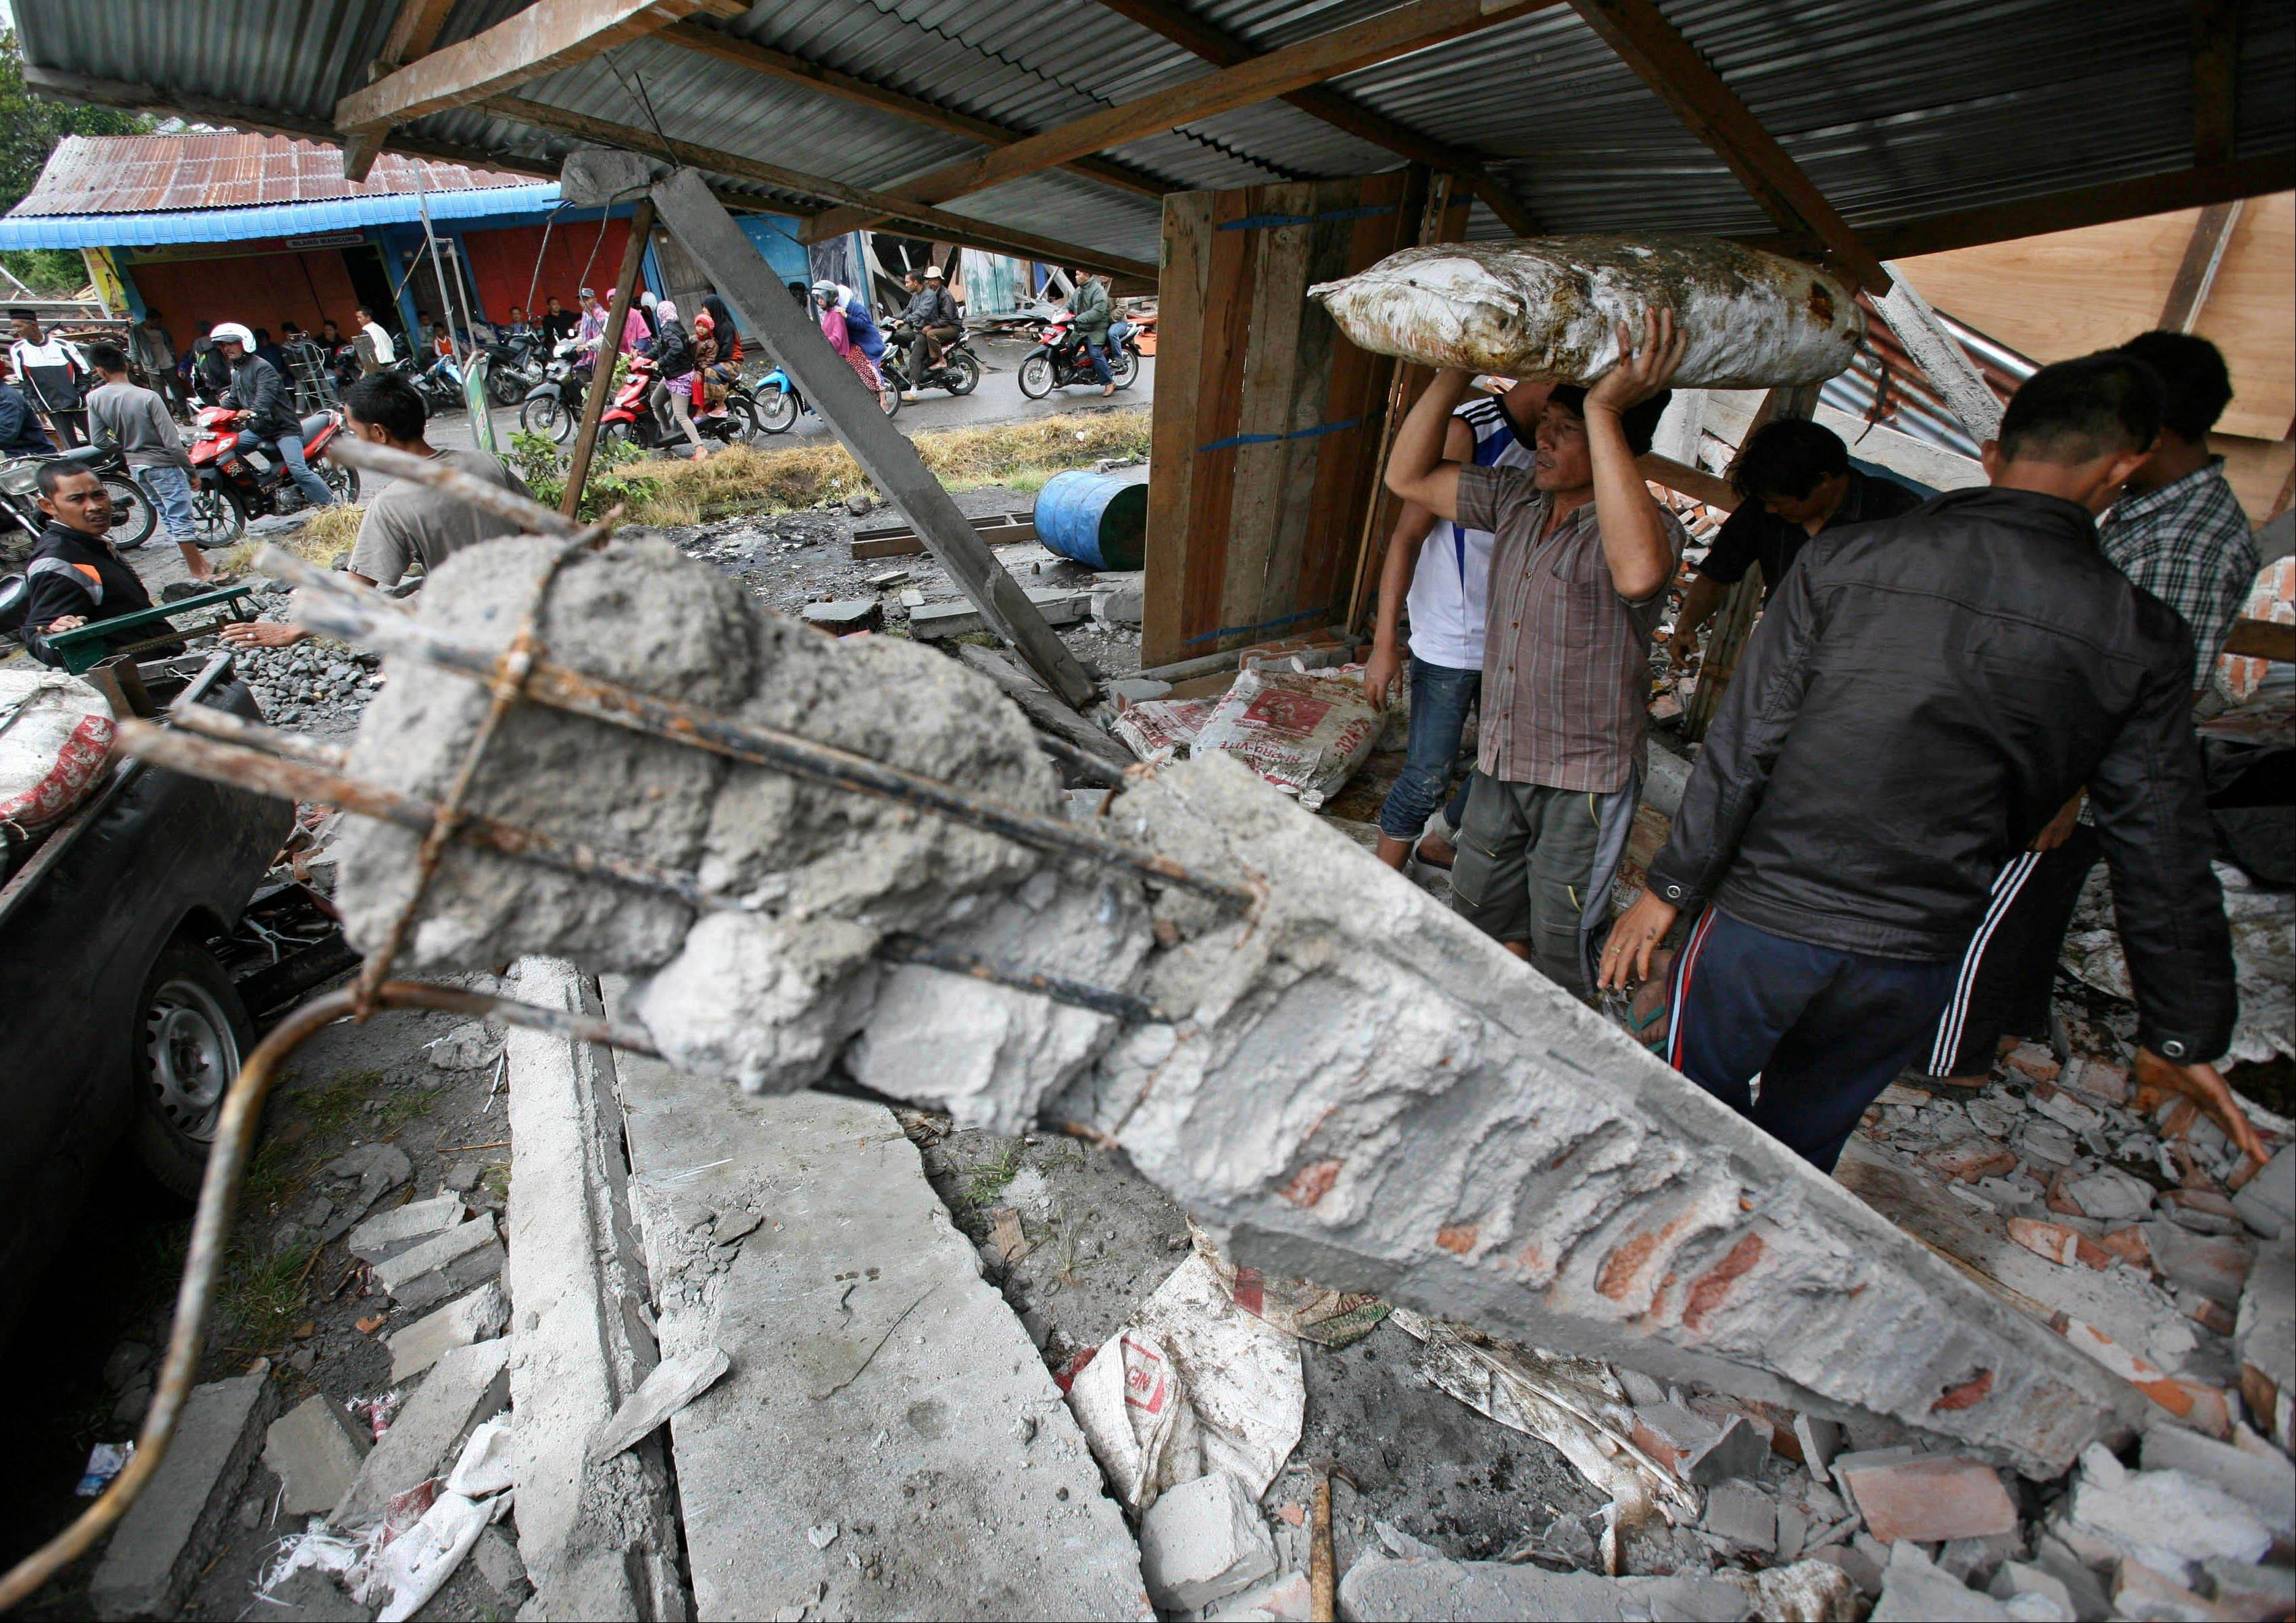 An Acehnese man carries a sack of rice he salvaged from a shop destroyed by Tuesday�s earthquake at a market in Blang Mancung, Aceh province, Indonesia, Thursday, July 4, 2013. The death toll from an earthquake that hit Indonesia�s Aceh province earlier this week has reached 30, and police and soldiers are searching the debris for another 12 people believed missing, officials said Thursday.